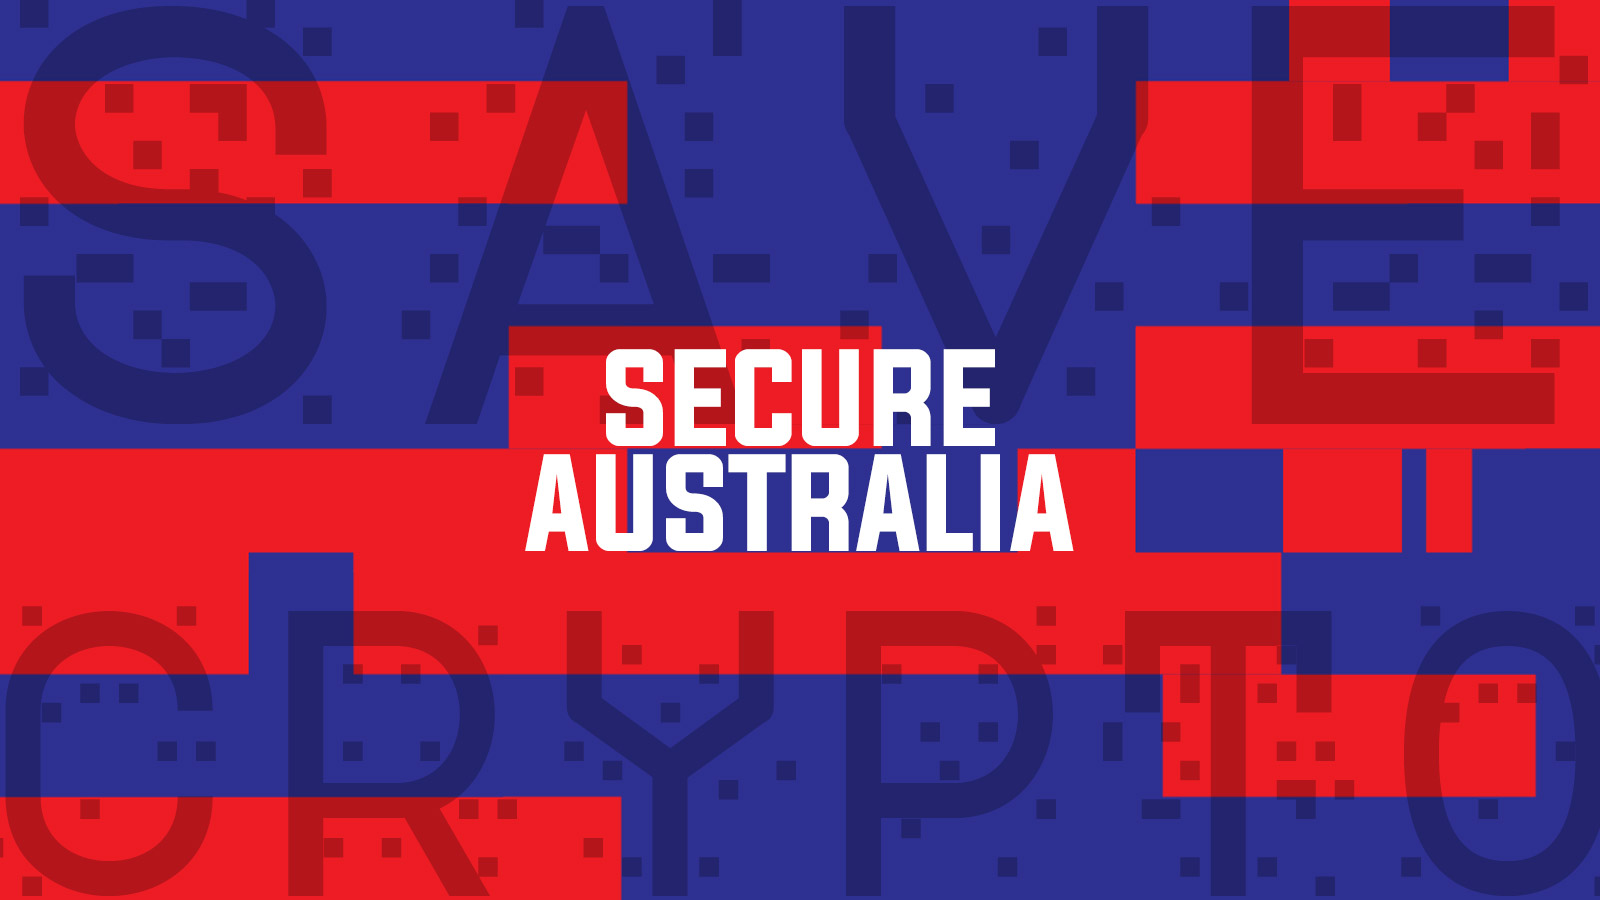 encryption bill australia - photo #21